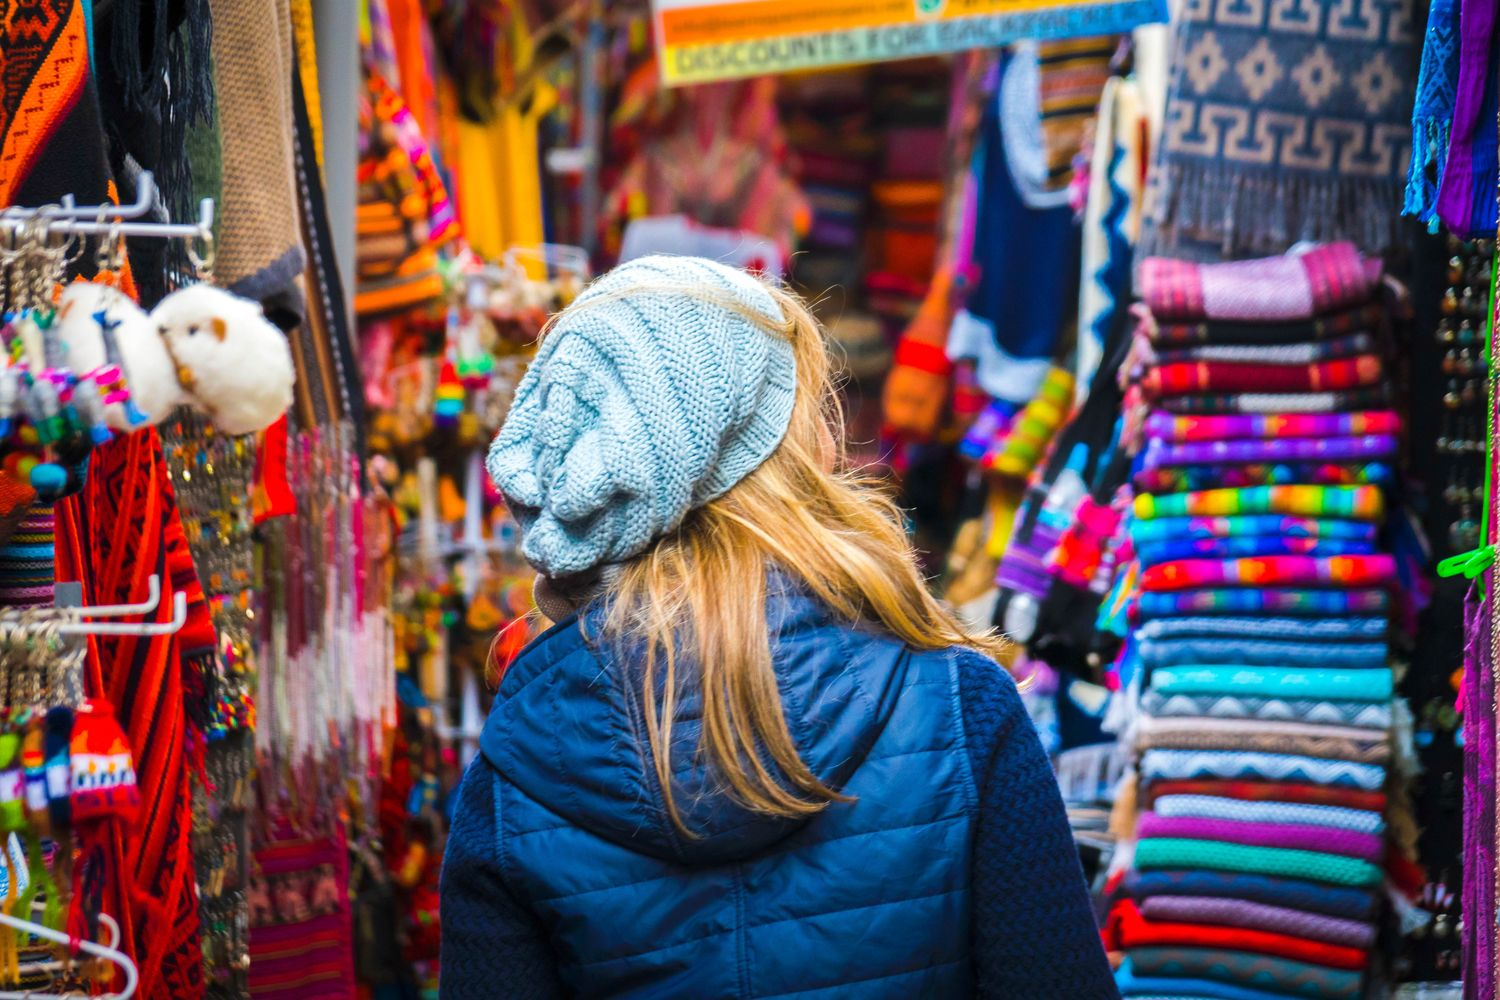 Female backpacker with her back to the camera walking through a busy marketplace, indicating that budgeting is a career skills you learn from traveling